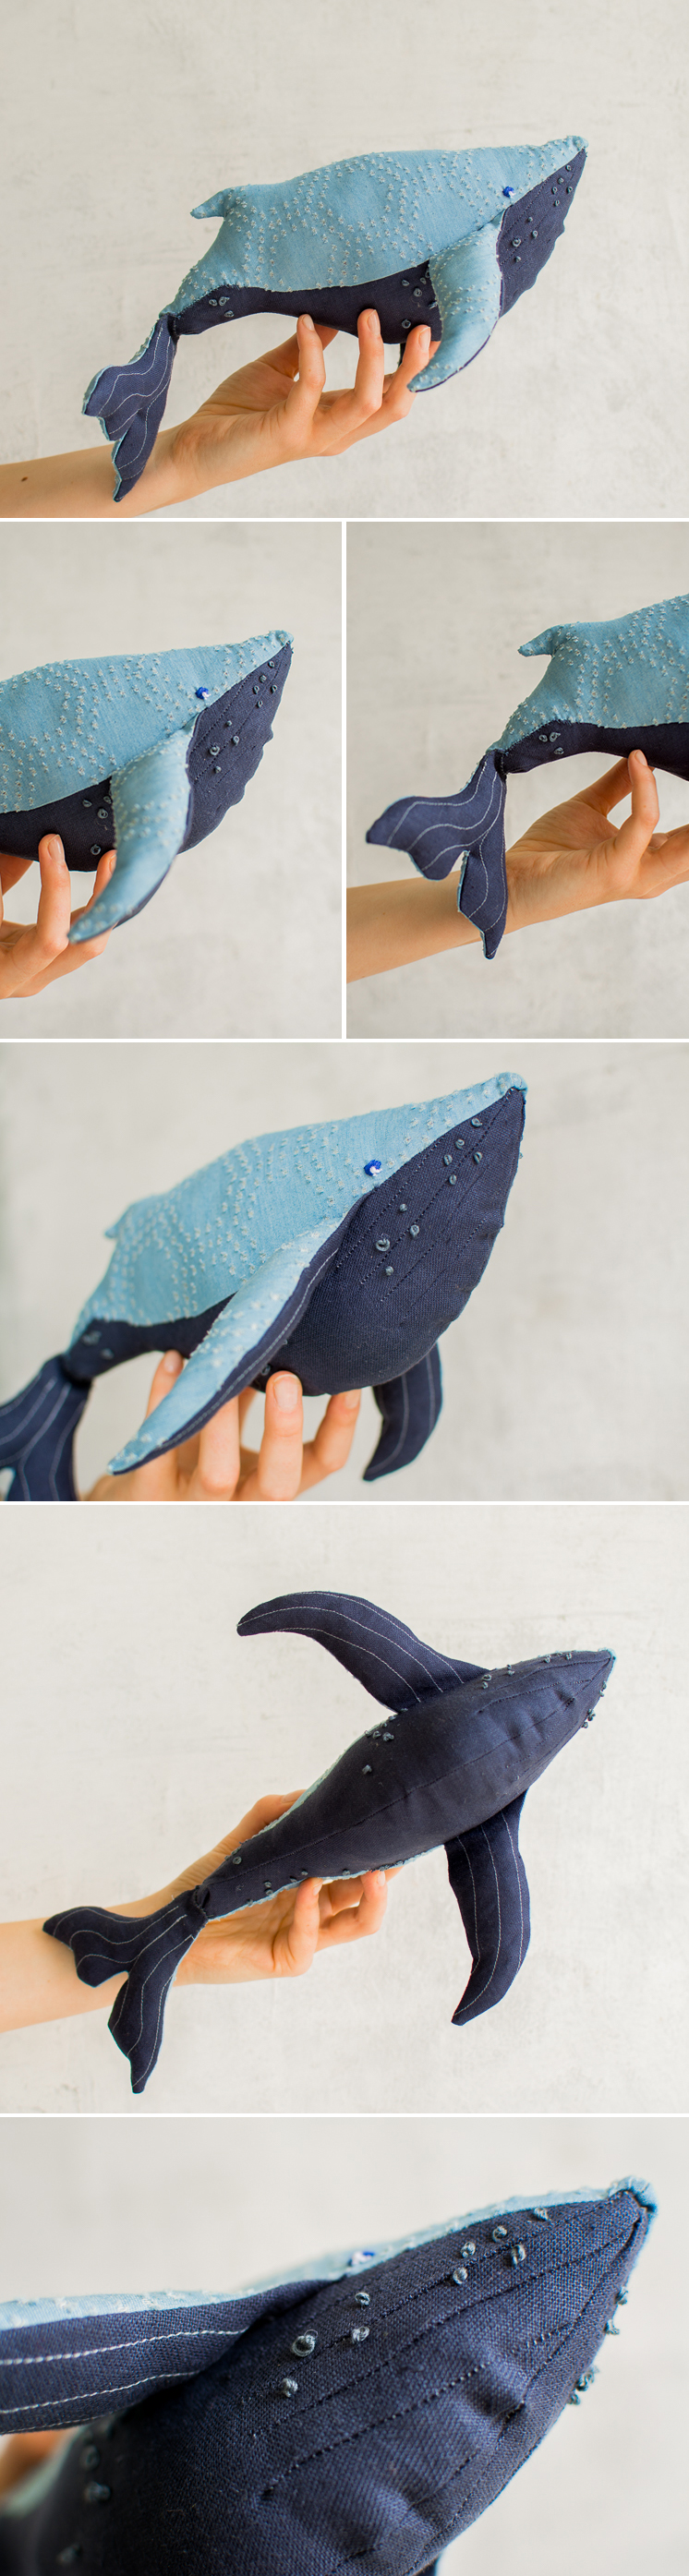 Use these templates to create this DIY stuffed whale